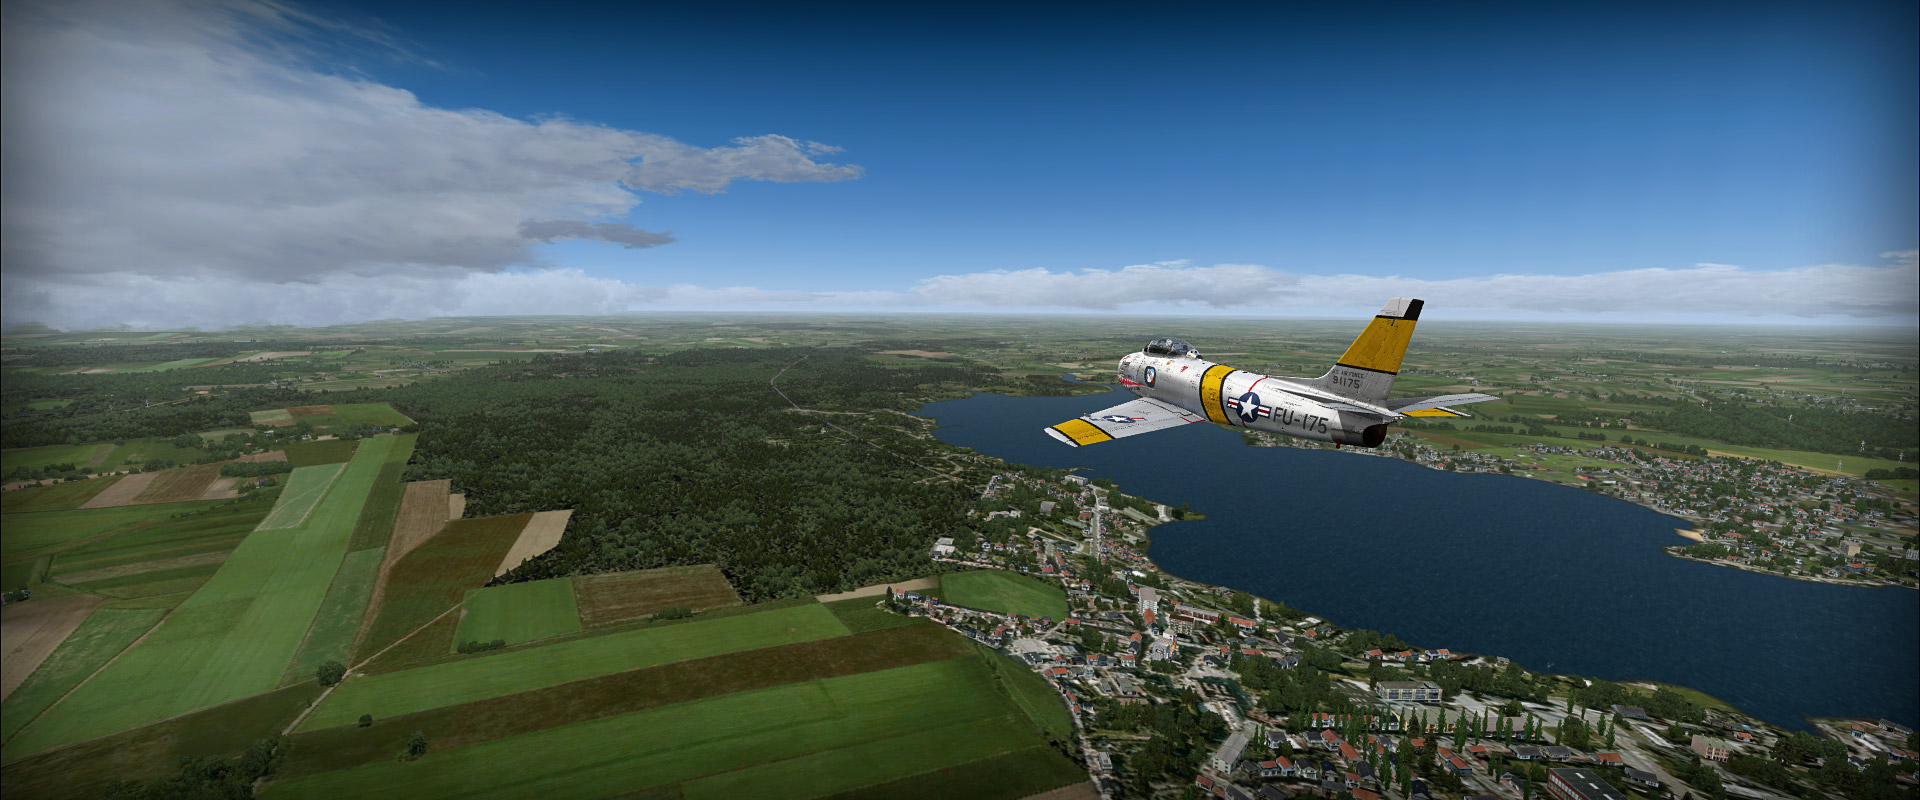 FTX Global openLC Europe - ORBX - review (5*) • C-Aviation